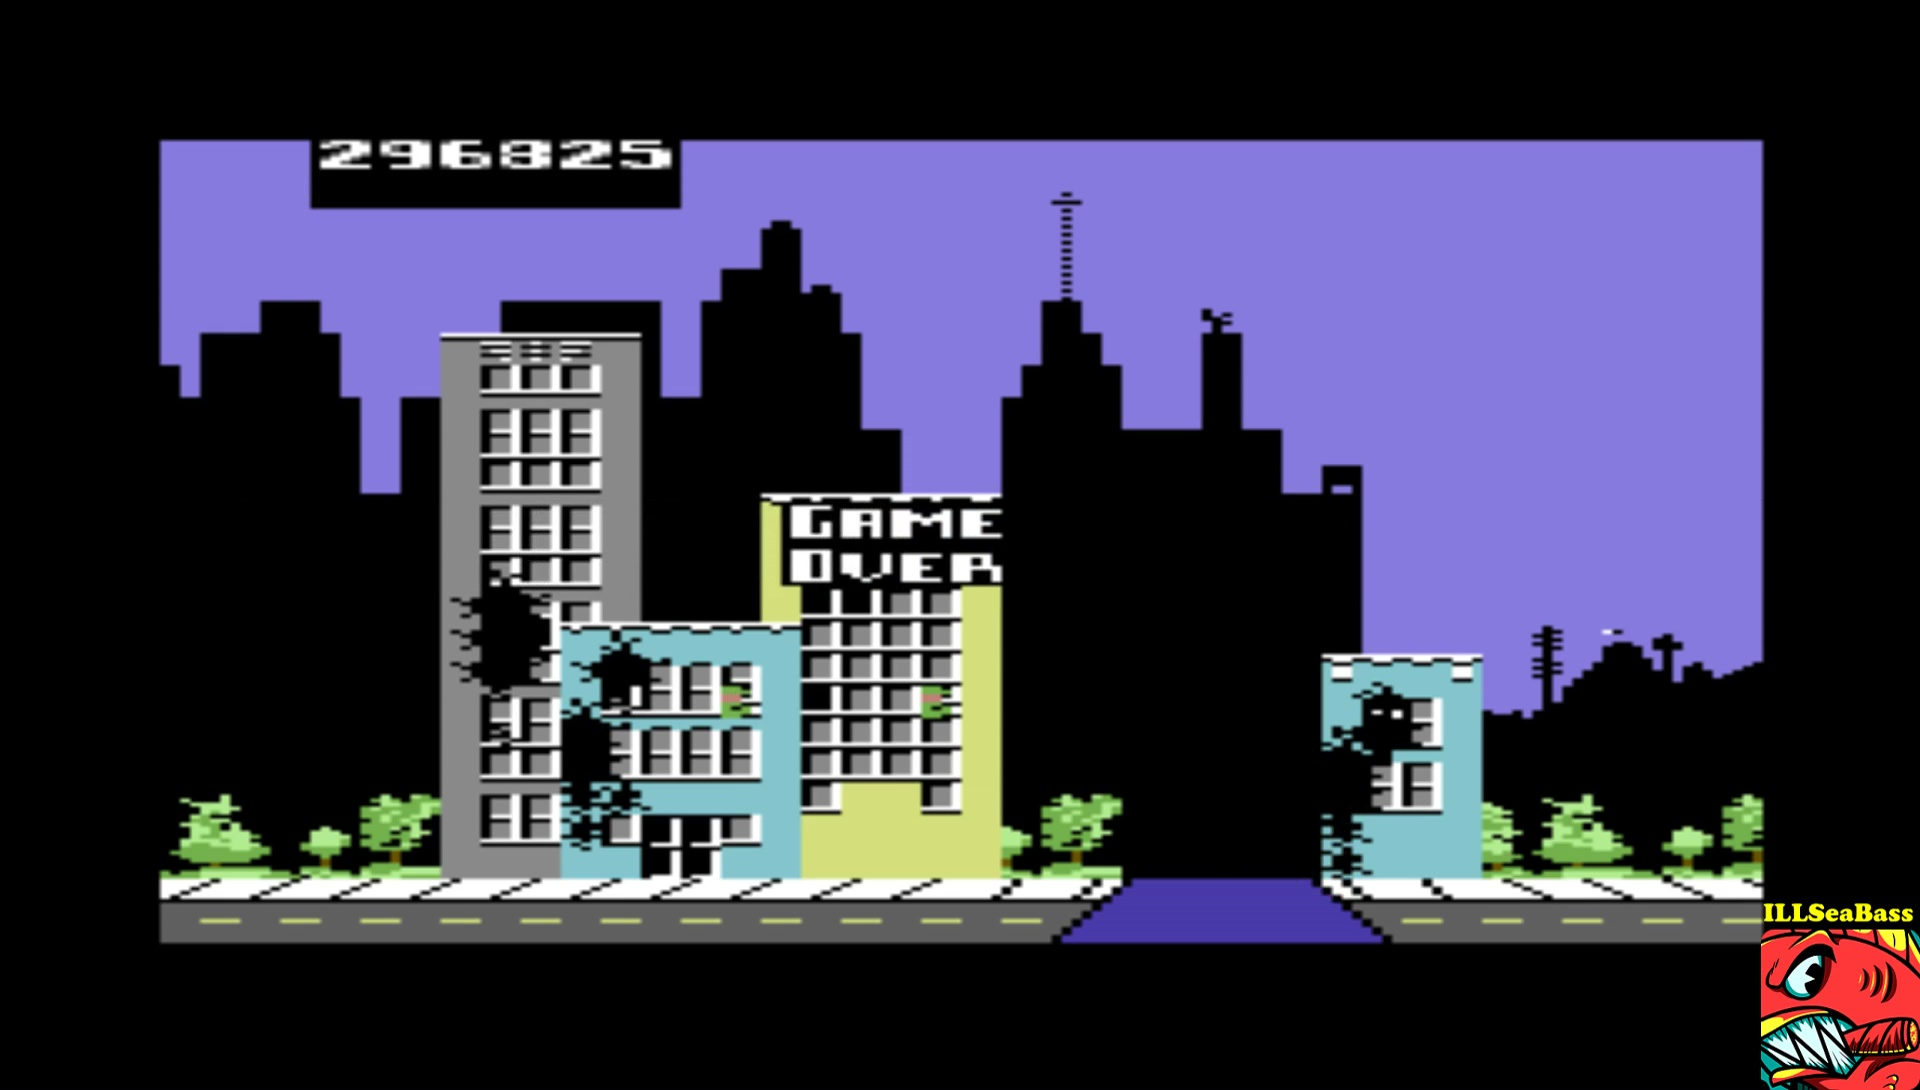 ILLSeaBass: Rampage [USA Version] (Commodore 64 Emulated) 296,825 points on 2017-02-25 22:03:18